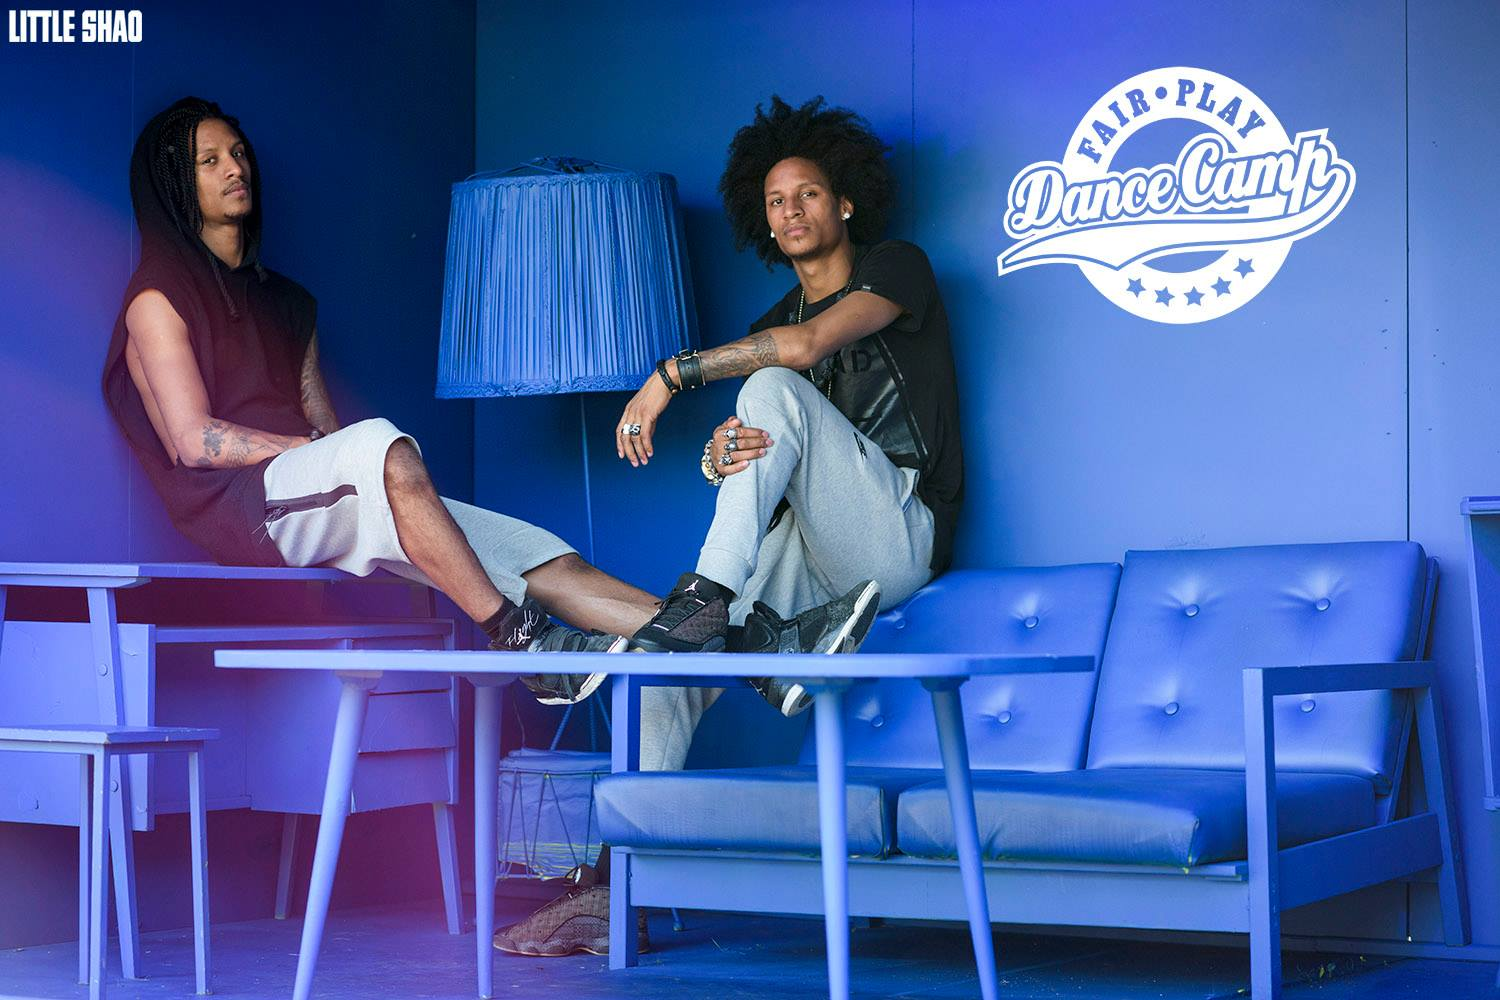 LES TWINS X FAIR PLAY DANCE CAMP